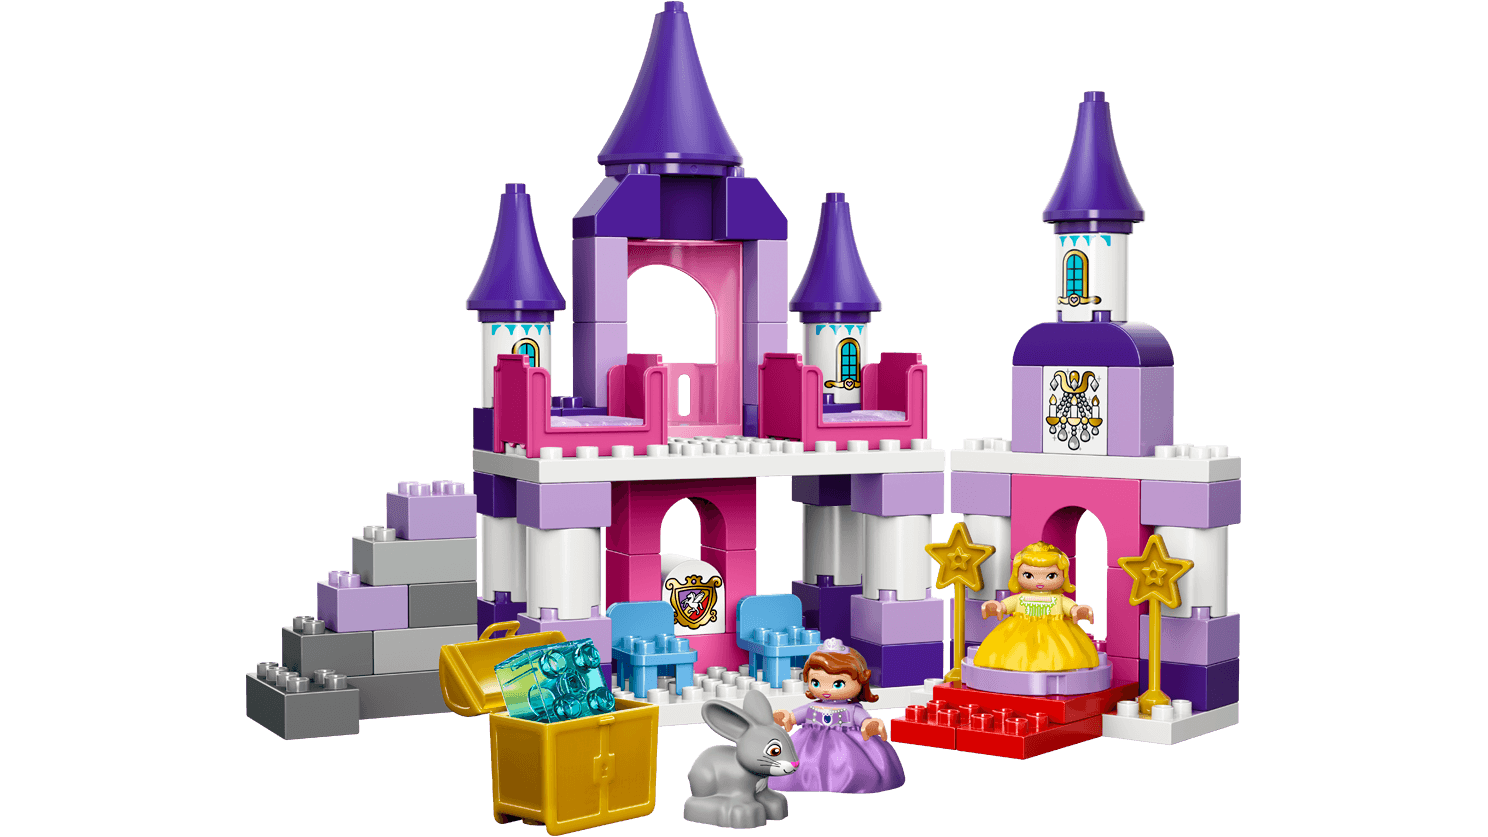 Palace clipart red castle. Search results lego shop